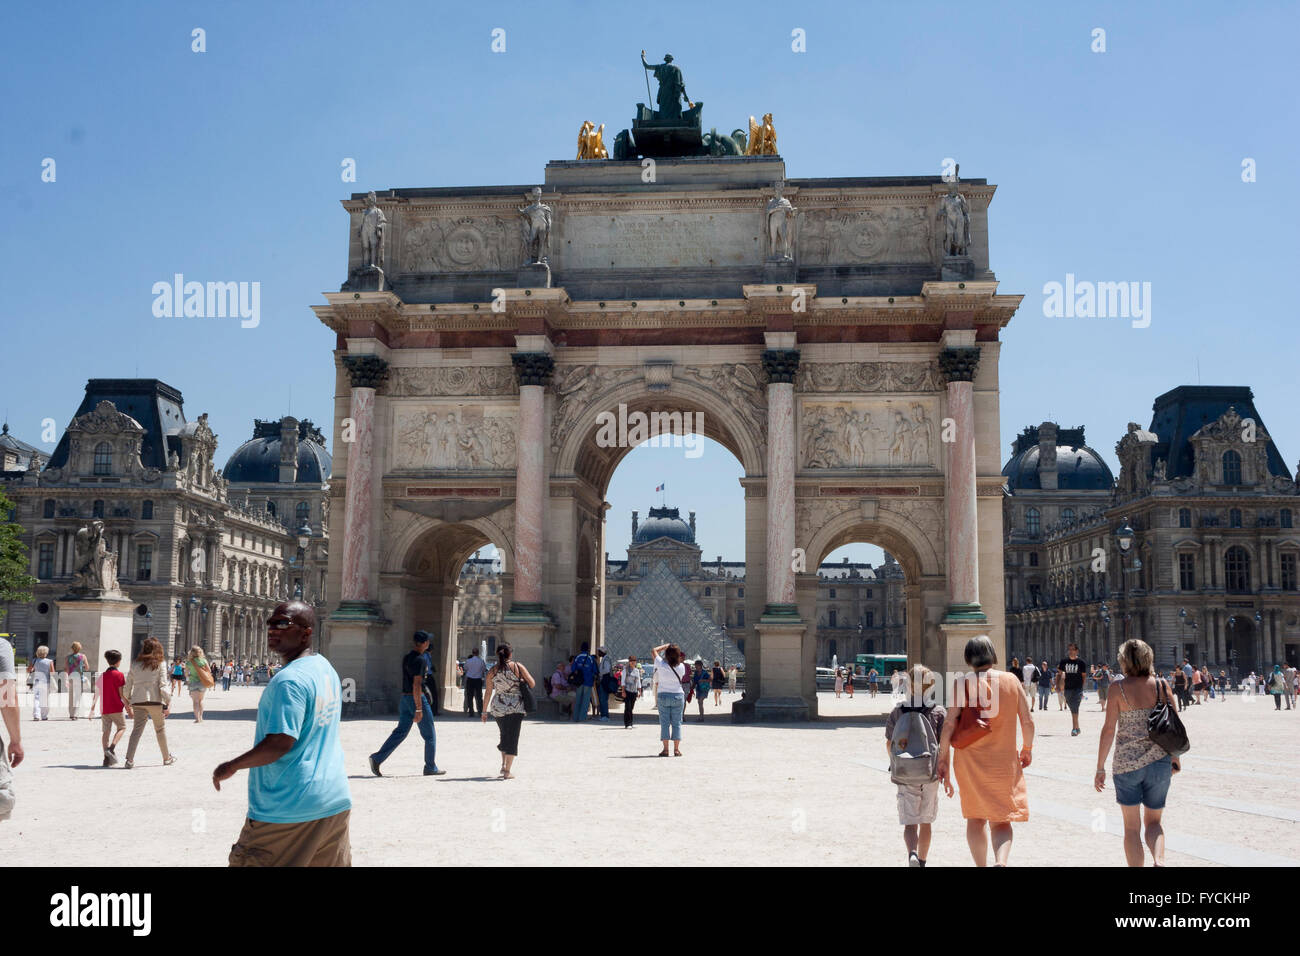 Members of the public walking next to remarkable building where is sited the Louvre Museum. Paris. France.  Pic - Stock Image